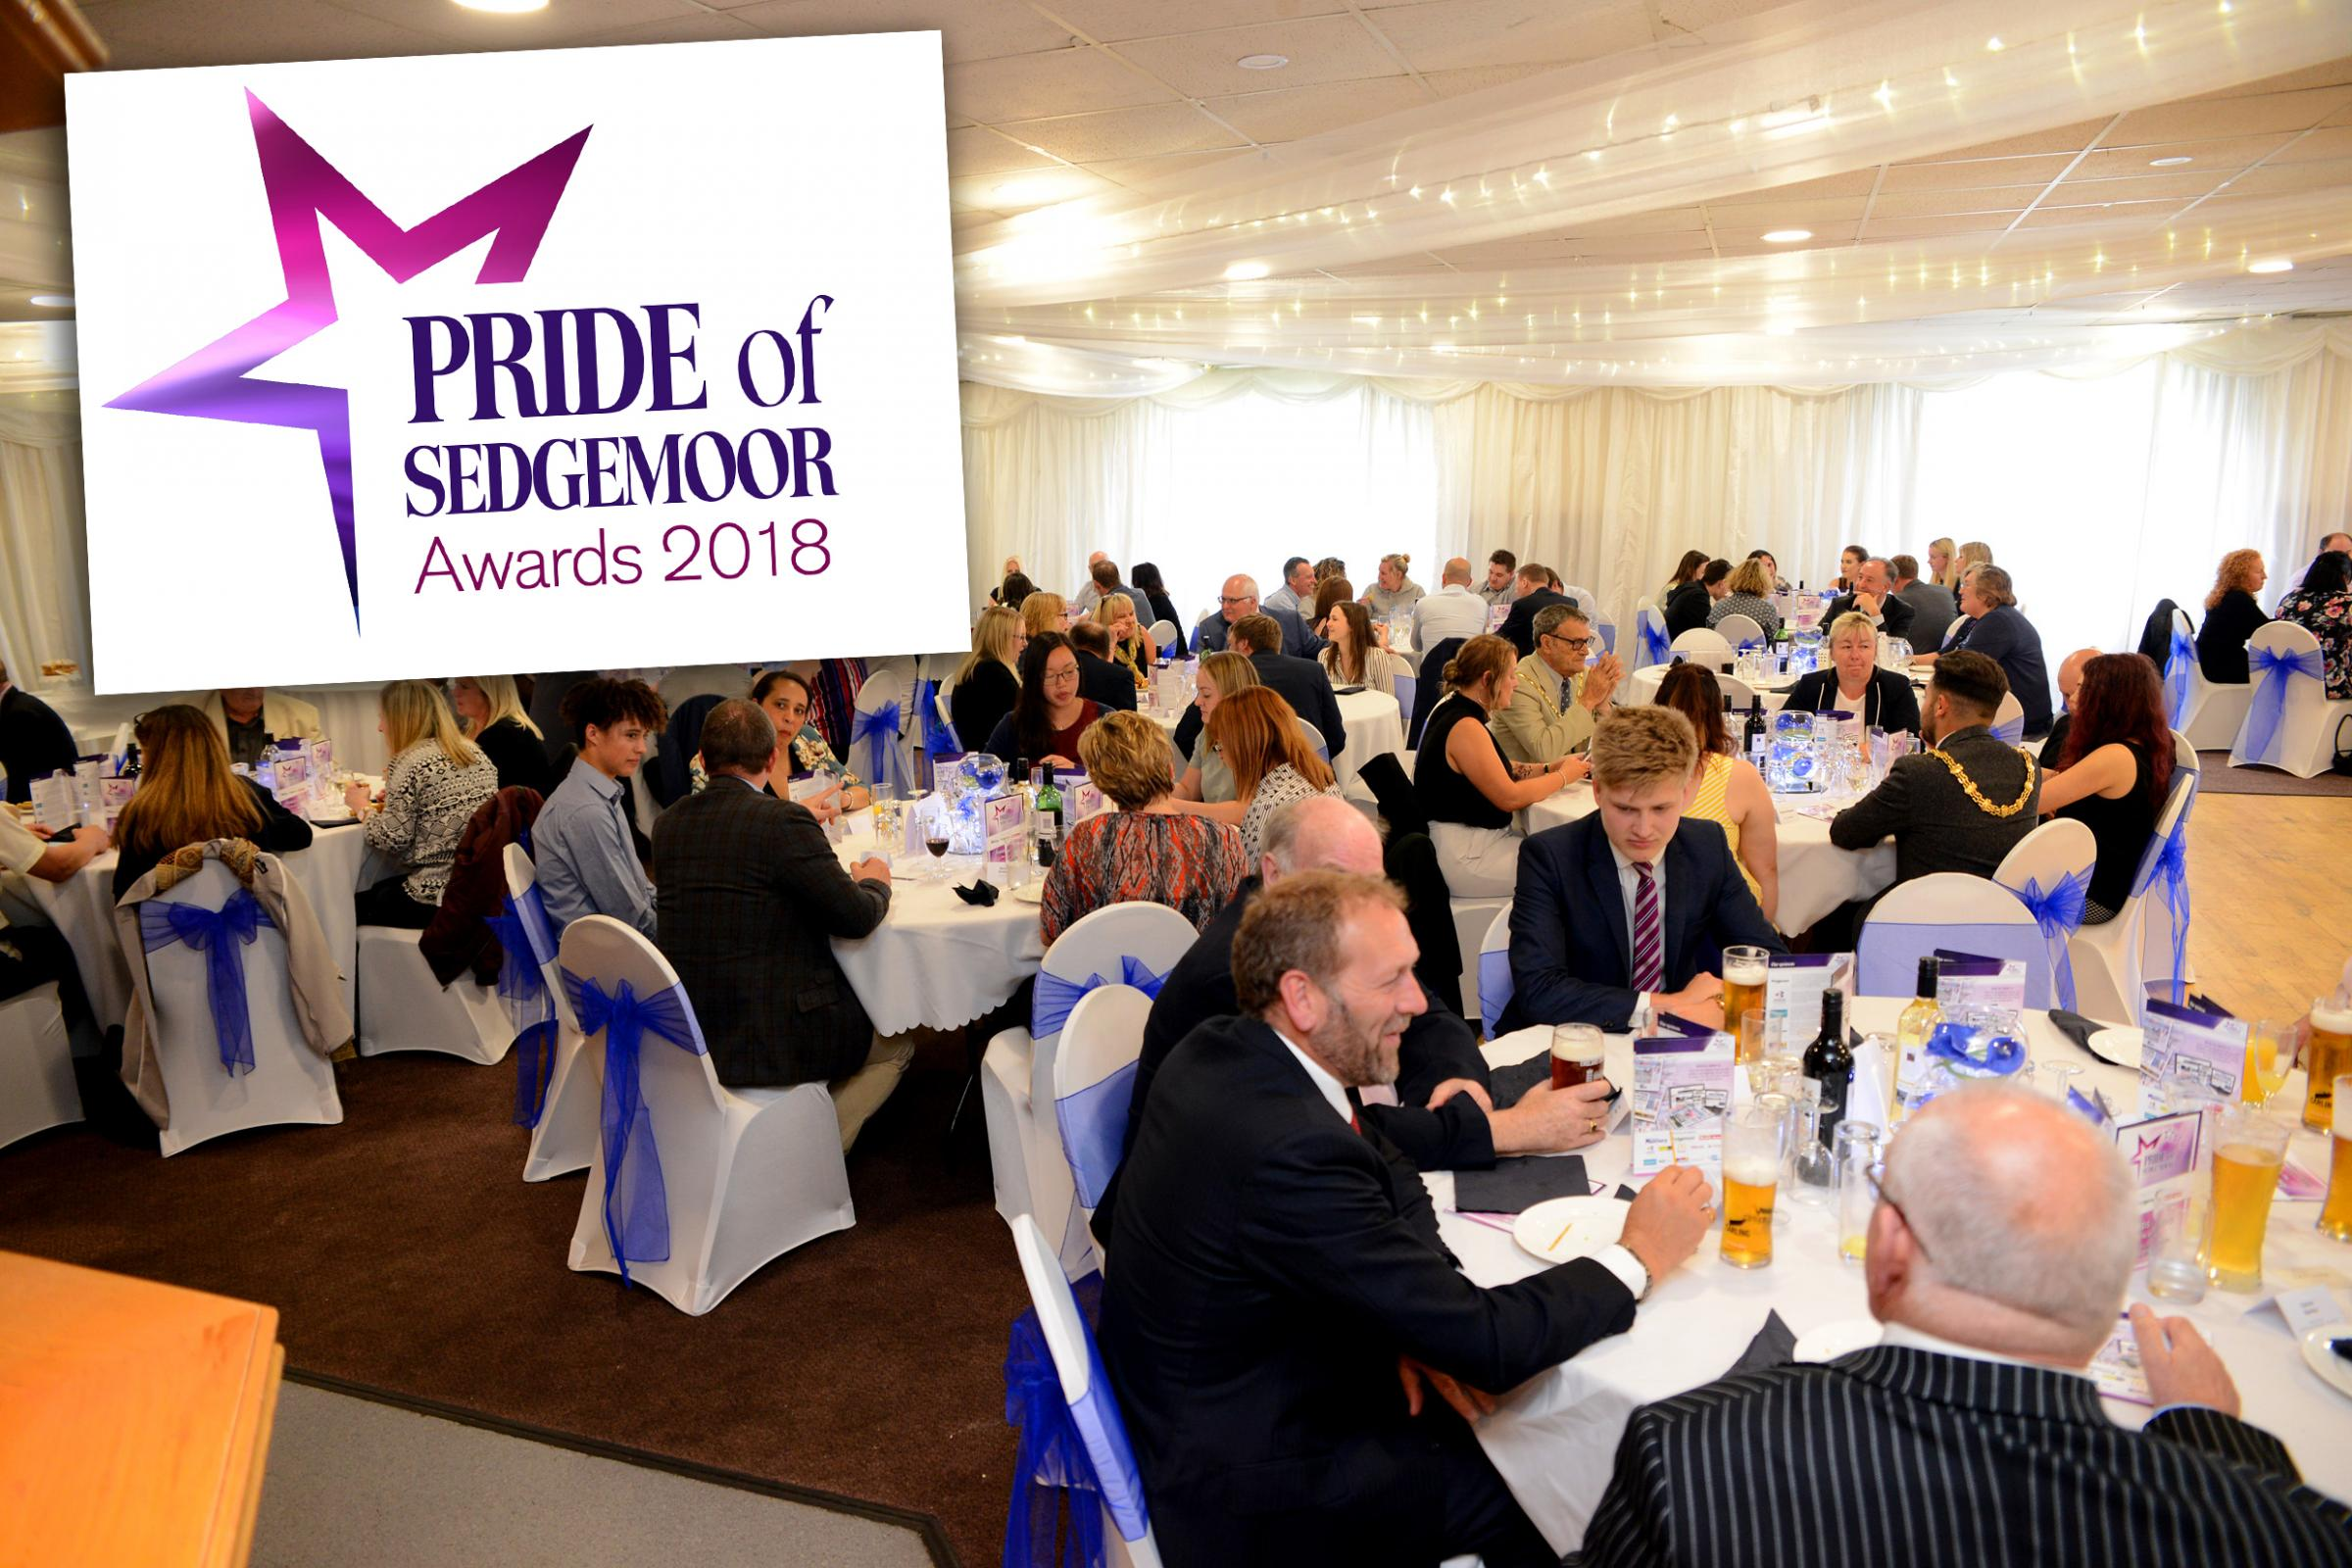 CELEBRATION: The Pride of Sedgemoor Awards took place on Wednesday, May 16